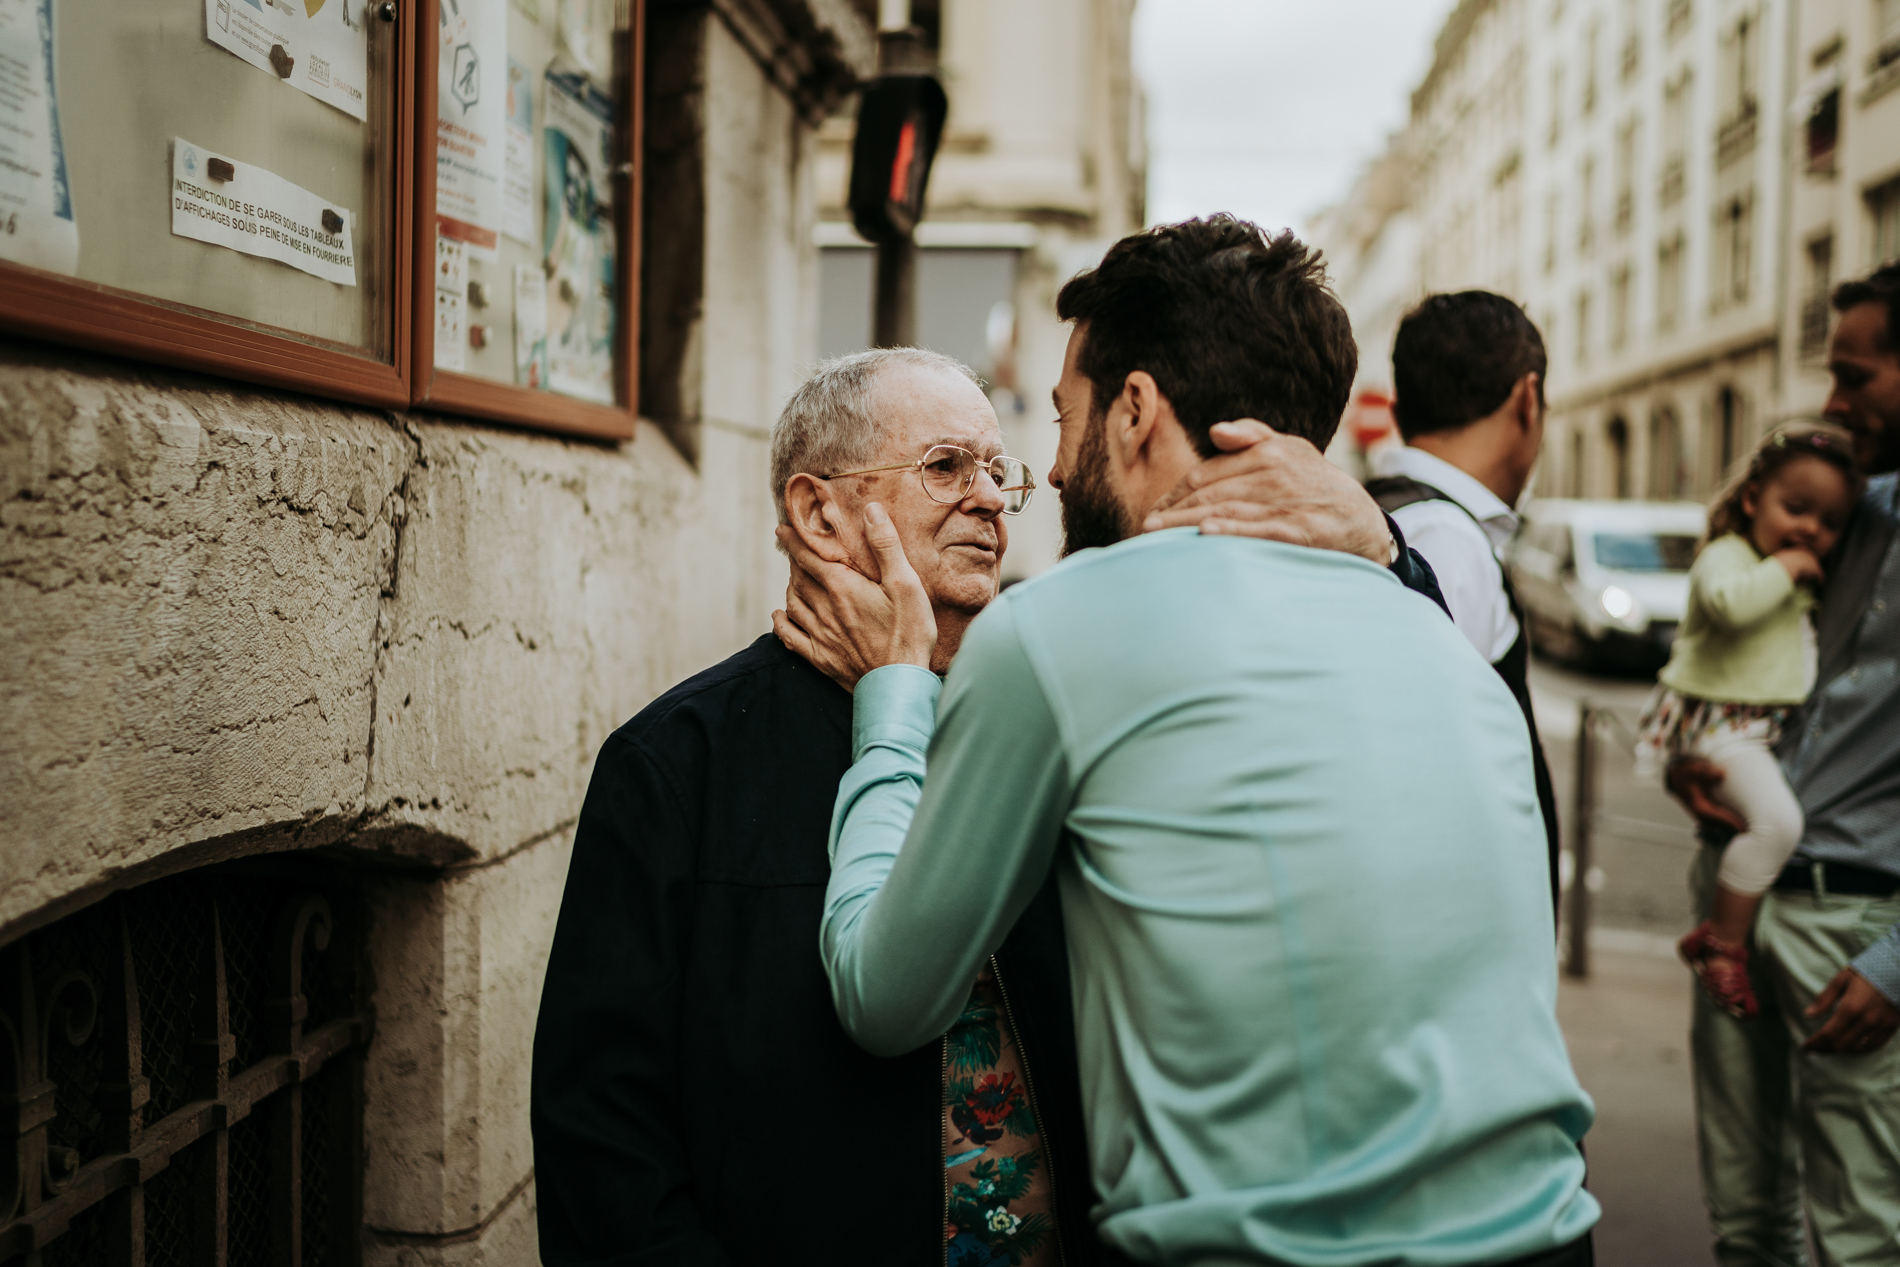 Lyon Wedding Photography - France | The groom and his grandfather, who was very moved to be able to attend the elopement